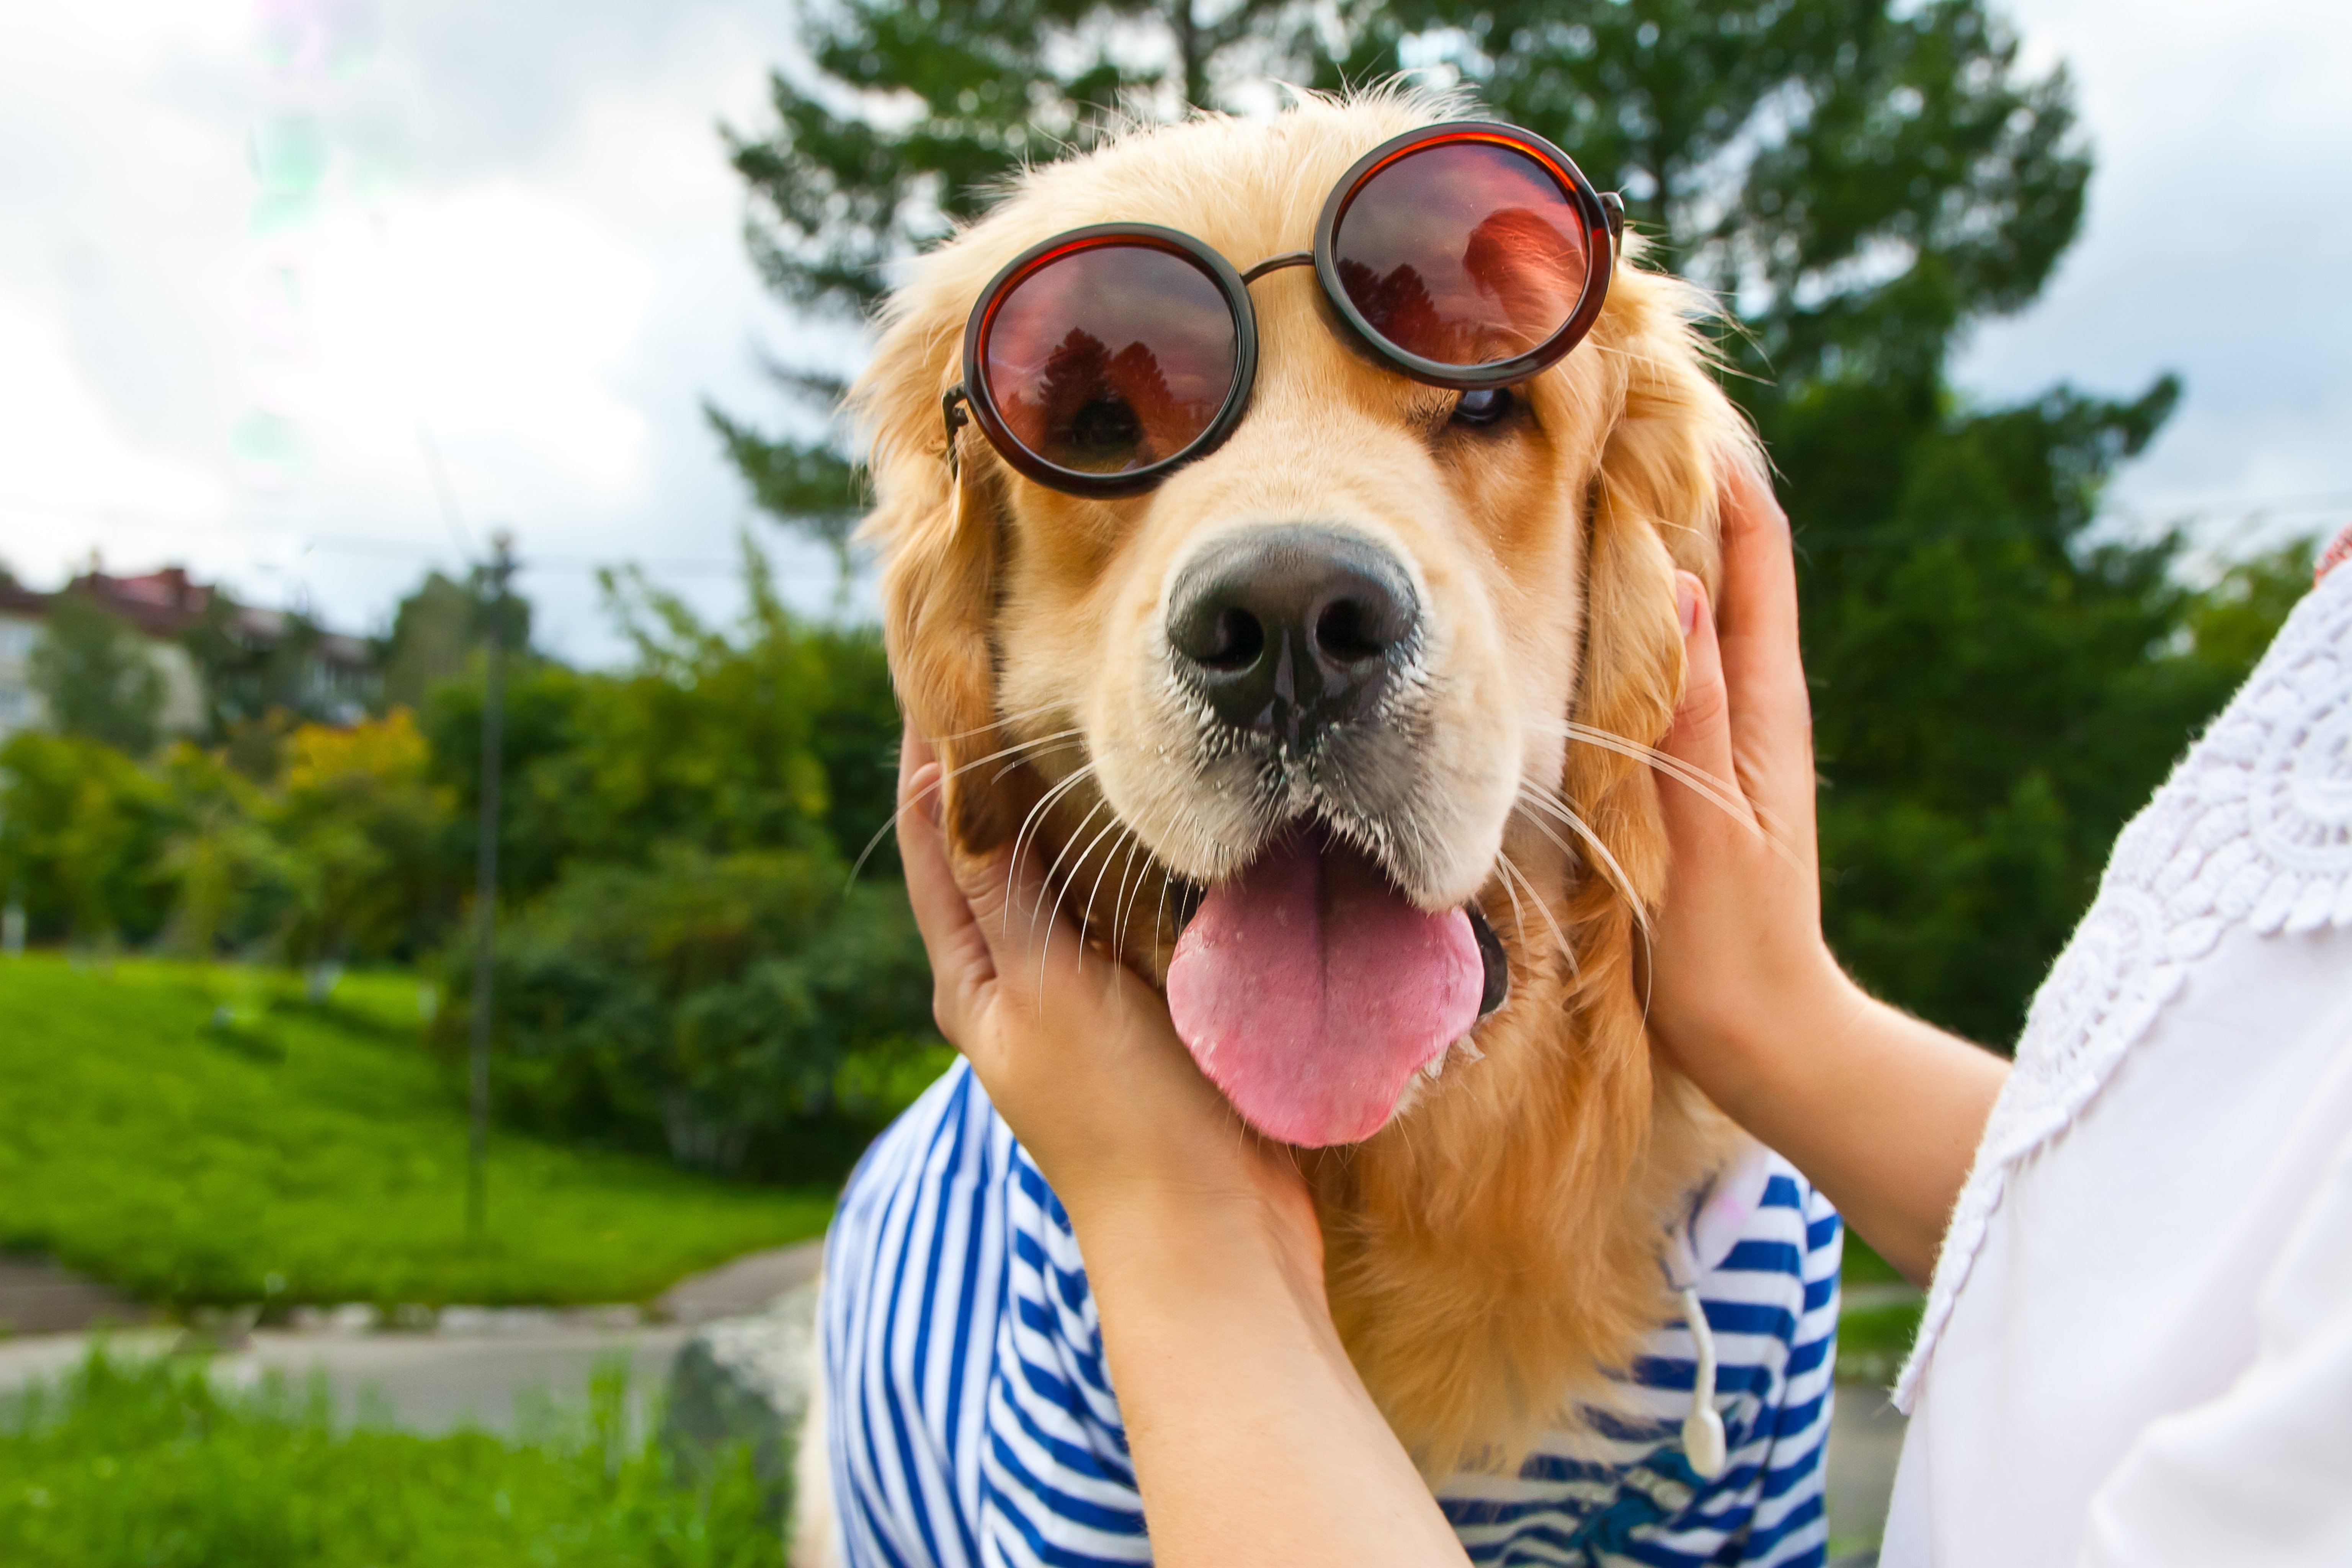 A Golden Retriever wearing glasses smiles for the camera   Photo: Shutterstock/Happyel777